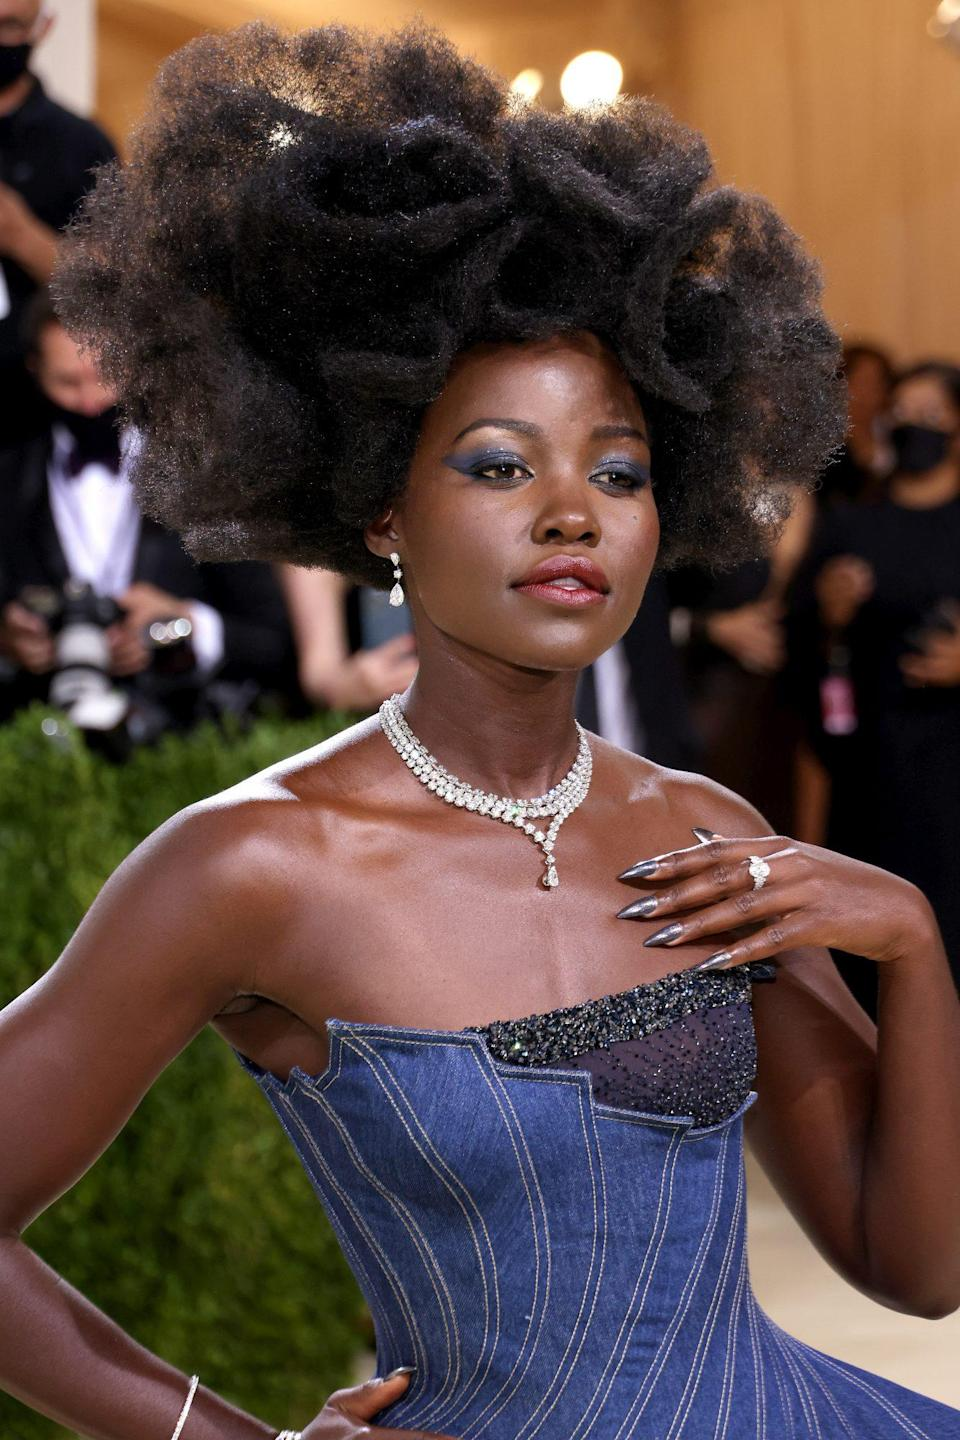 """<p>When it comes to Lupita Nyong'o, makeup artist <a href=""""https://www.instagram.com/nickbarose/"""" rel=""""nofollow noopener"""" target=""""_blank"""" data-ylk=""""slk:Nick Barose"""" class=""""link rapid-noclick-resp"""">Nick Barose</a> does <em>not </em>play around. He used Lancôme's Hypnôse 5-Color Eyeshadow Palette to match the star's eyes to her denim gown — a perfect ode to American fashion. For hair, Vernon François crafted a gorgeous, gravity-defying, structural afro that once again proves coily hair can <em>literally </em>do anything. </p>"""